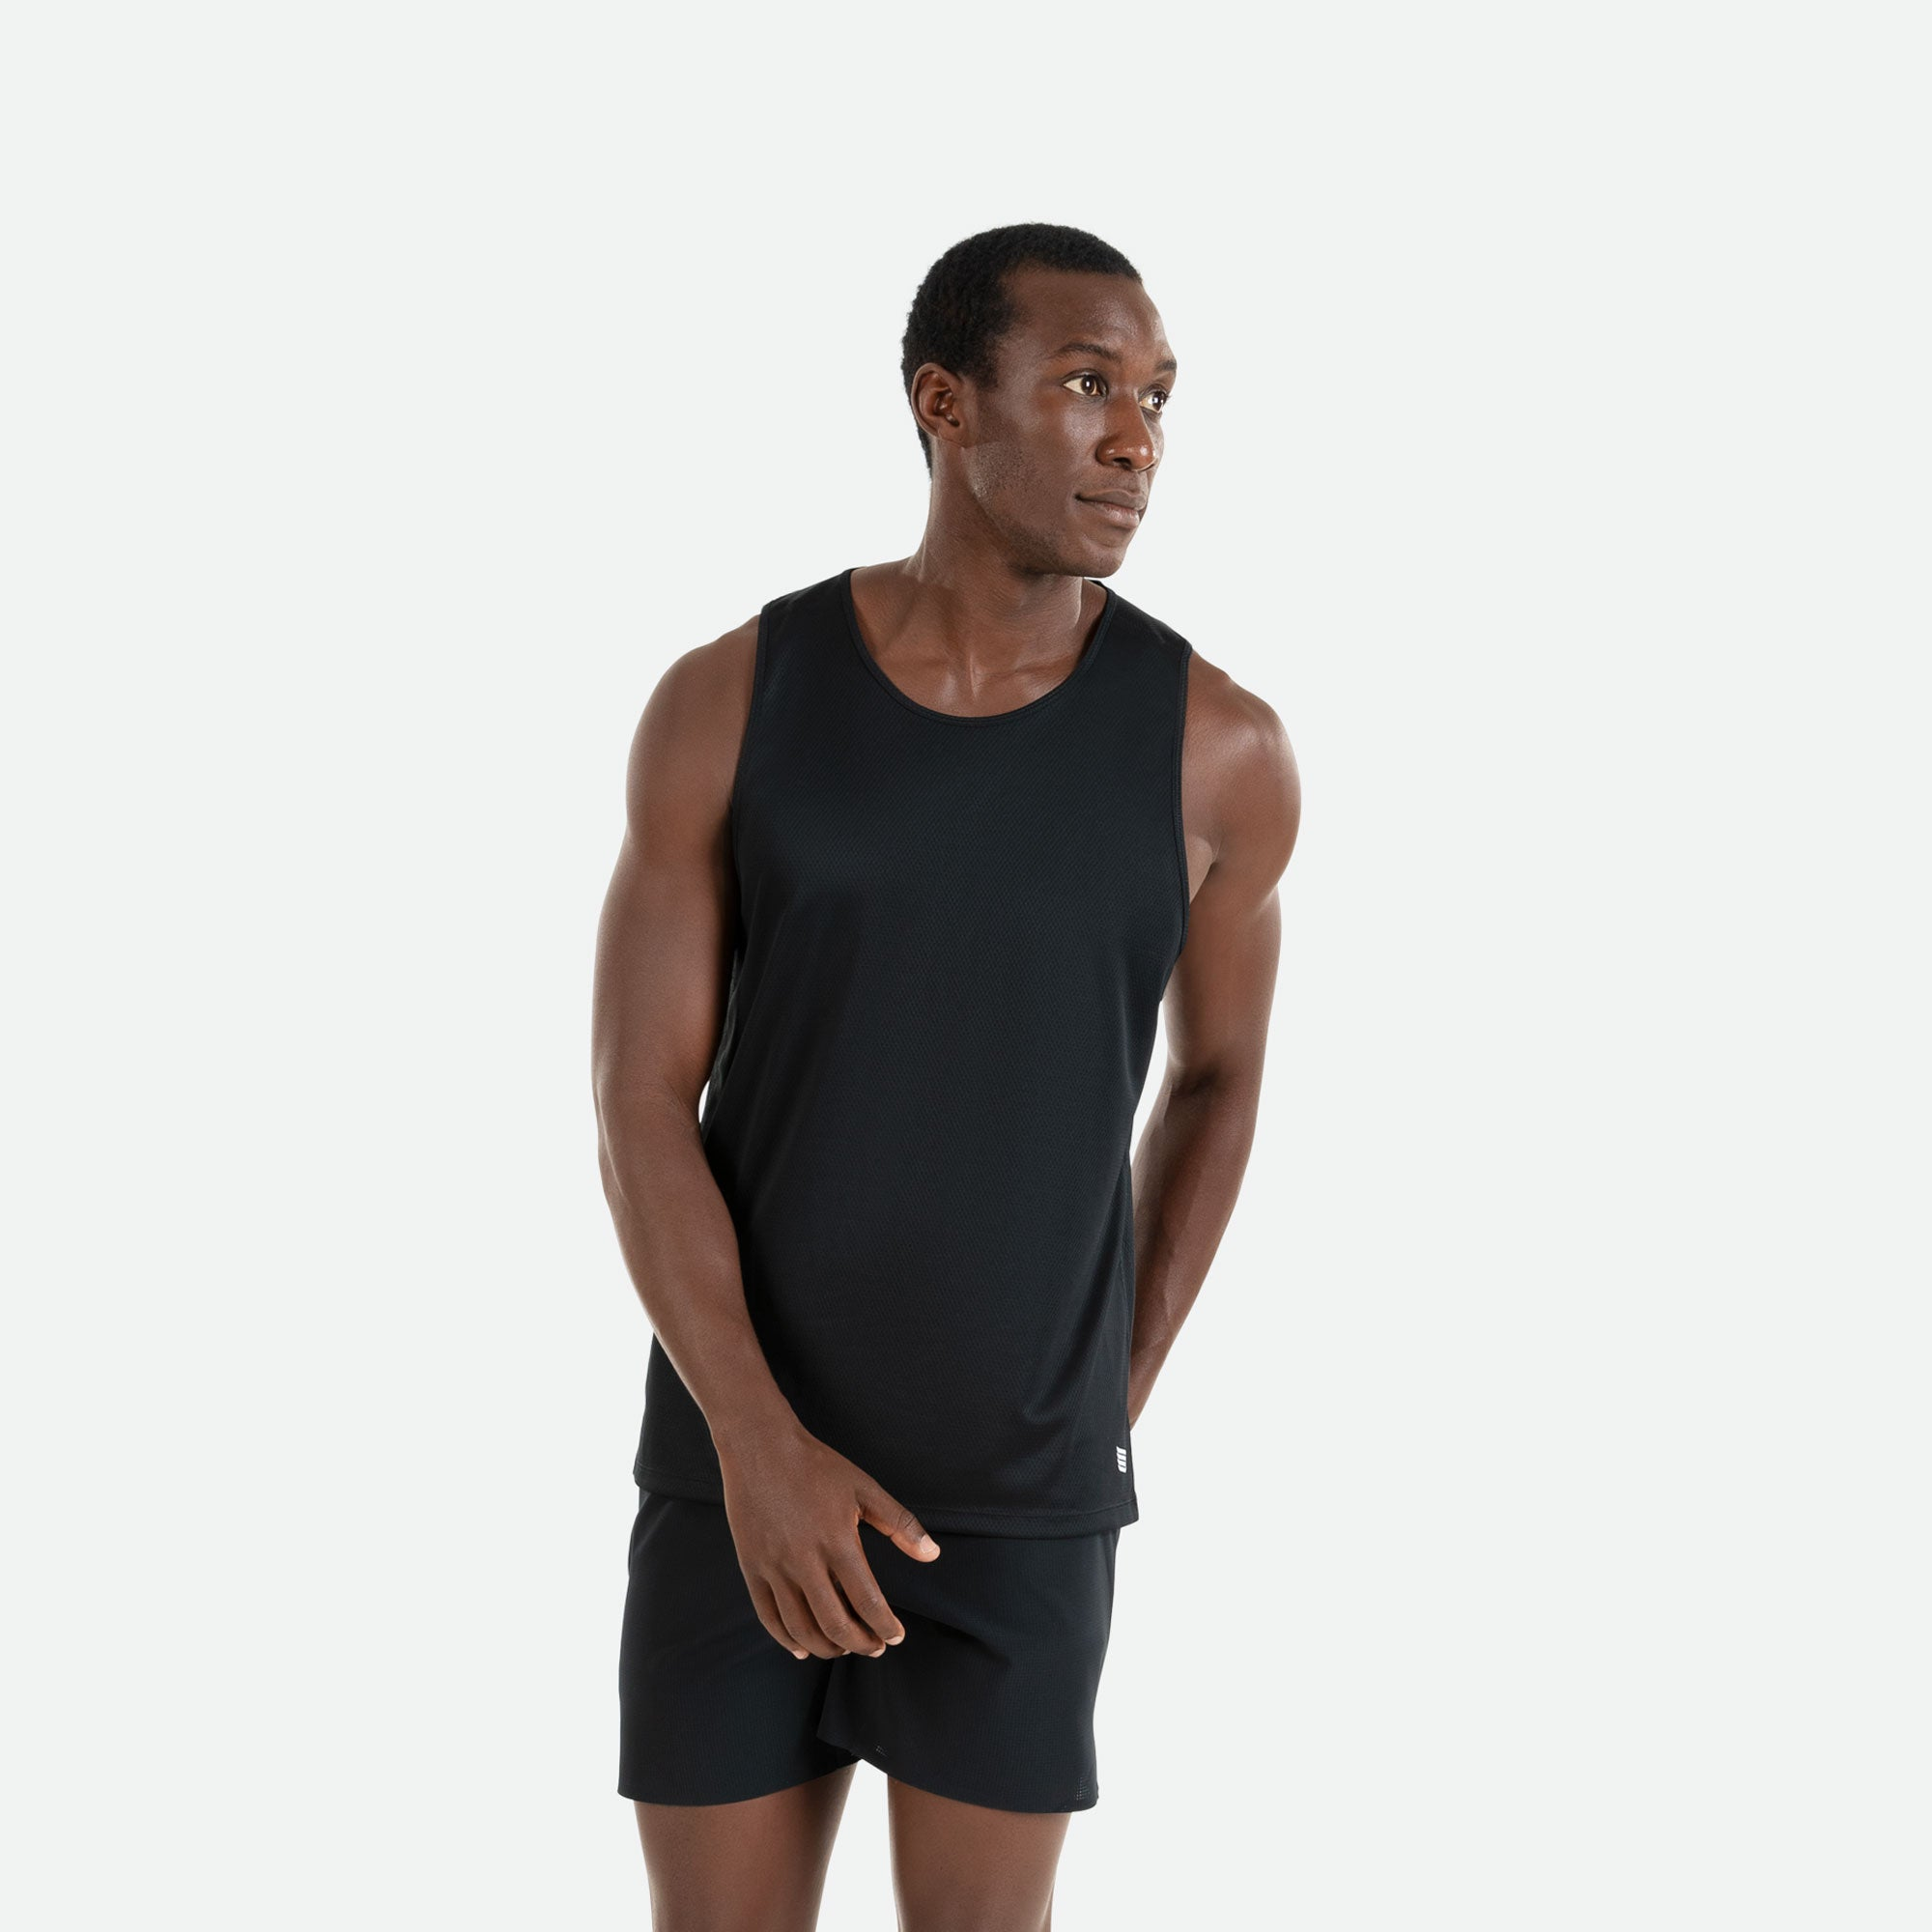 Our Pressio men's black Hāpai singlet features EcoTECH MF fabric which has dual filament recycled polyester yarns from Unifi for superior moisture control to keep you dry.